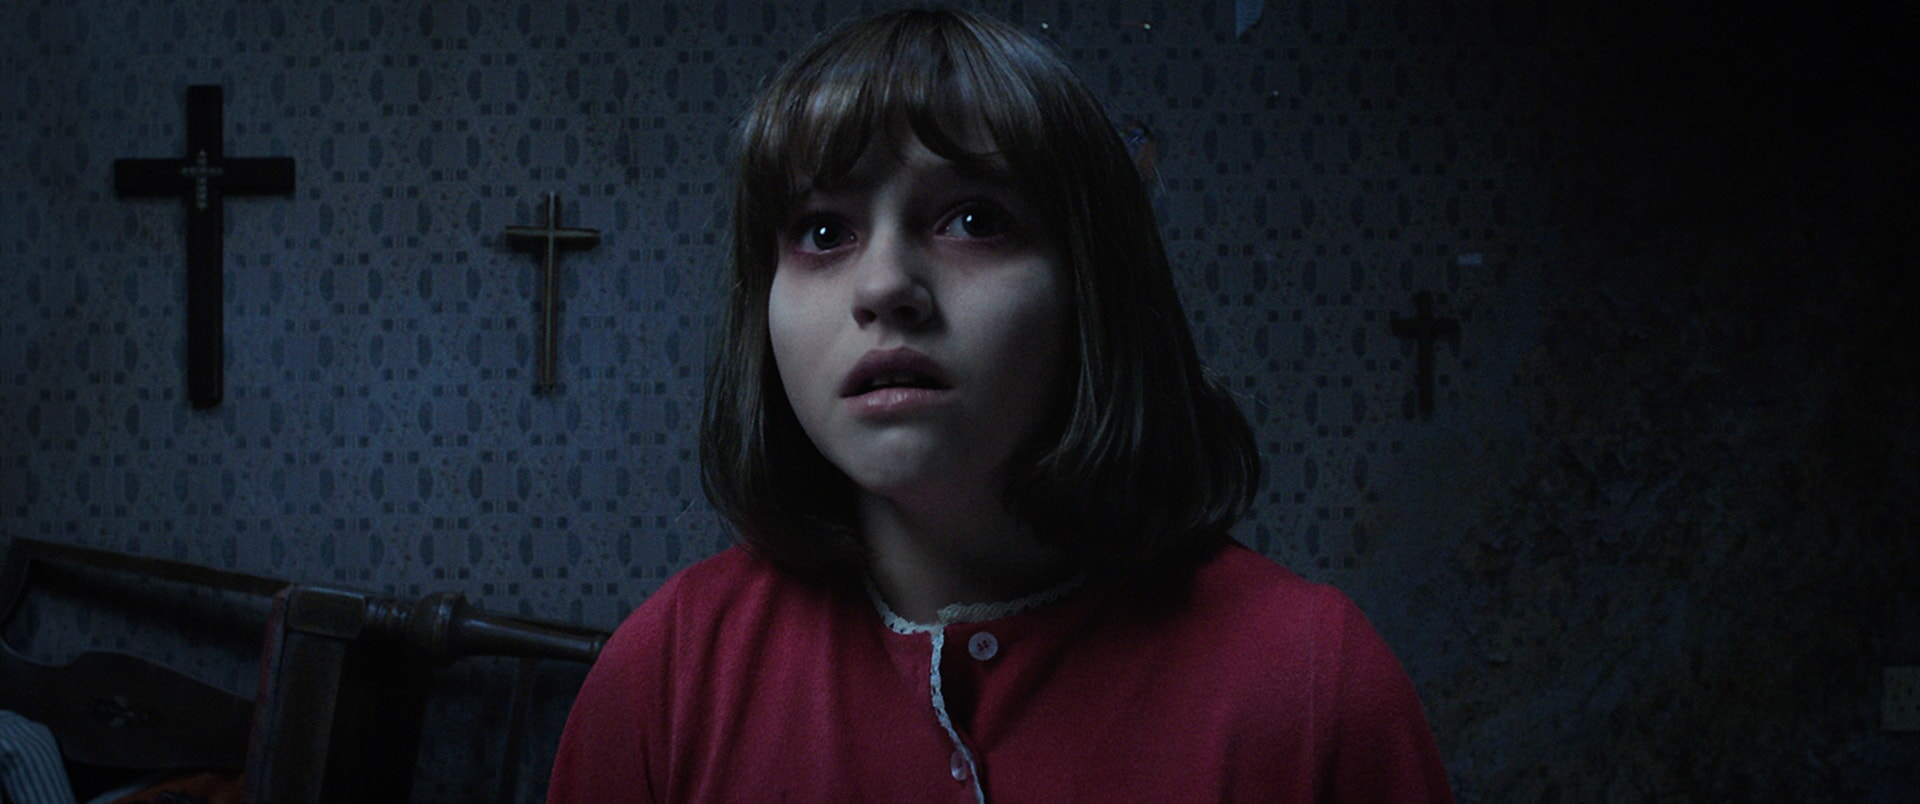 MADISON WOLFE as Janet Hodgson in red nightgown